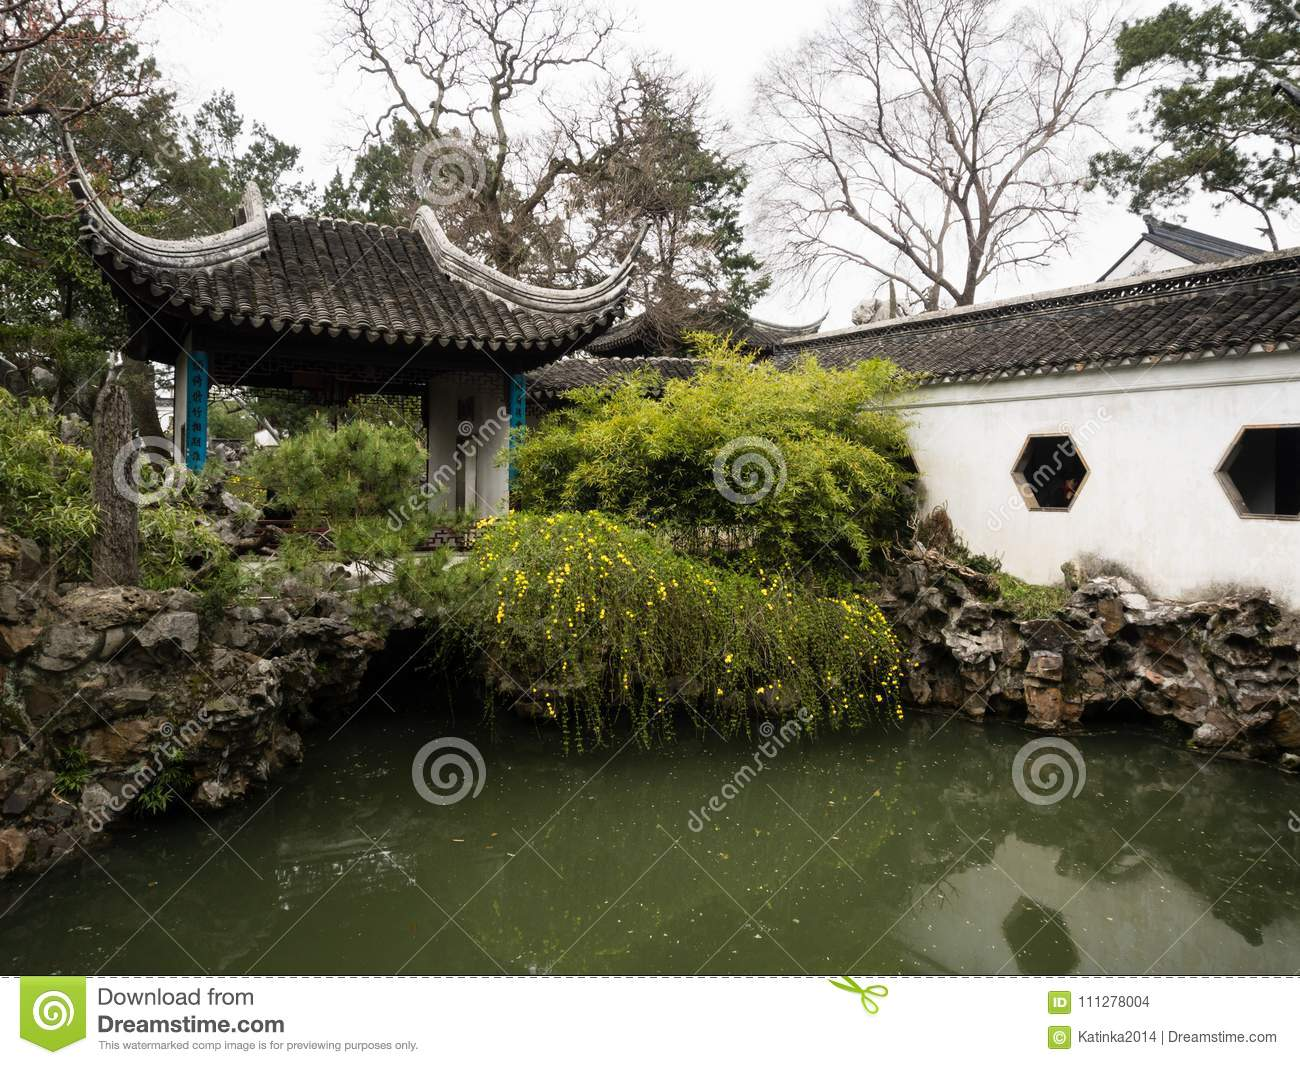 Lion Grove Garden, a classical Chinese garden and part of Unesco World Heritage in Suzhou